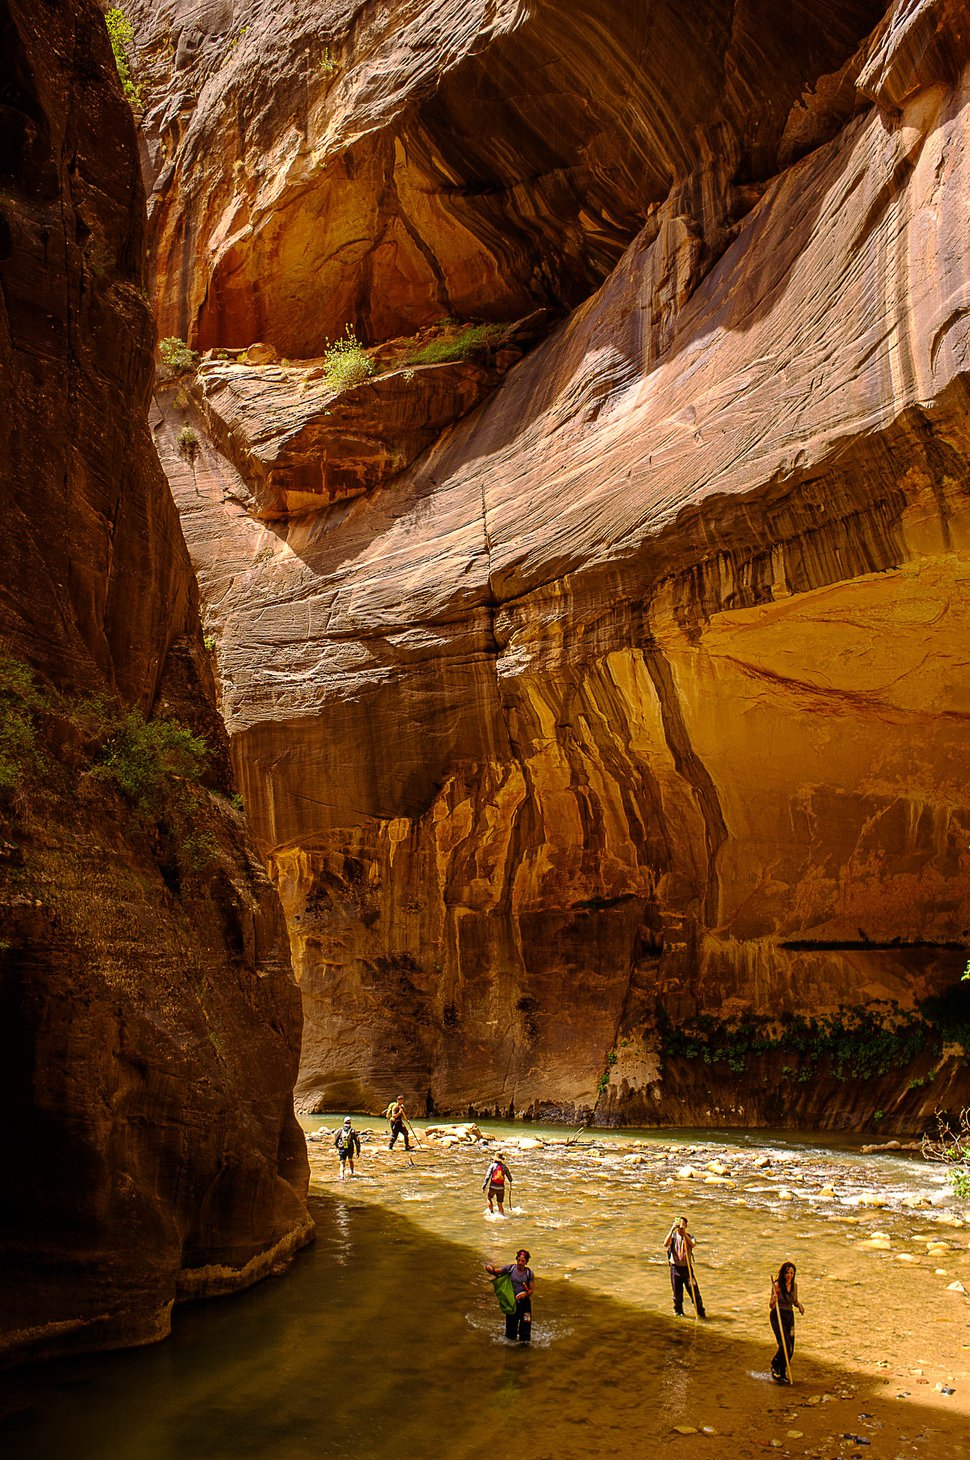 (Trent Nelson | The Salt Lake Tribune) Hikers in the Narrows, Zion National Park, Wednesday May 6, 2015.